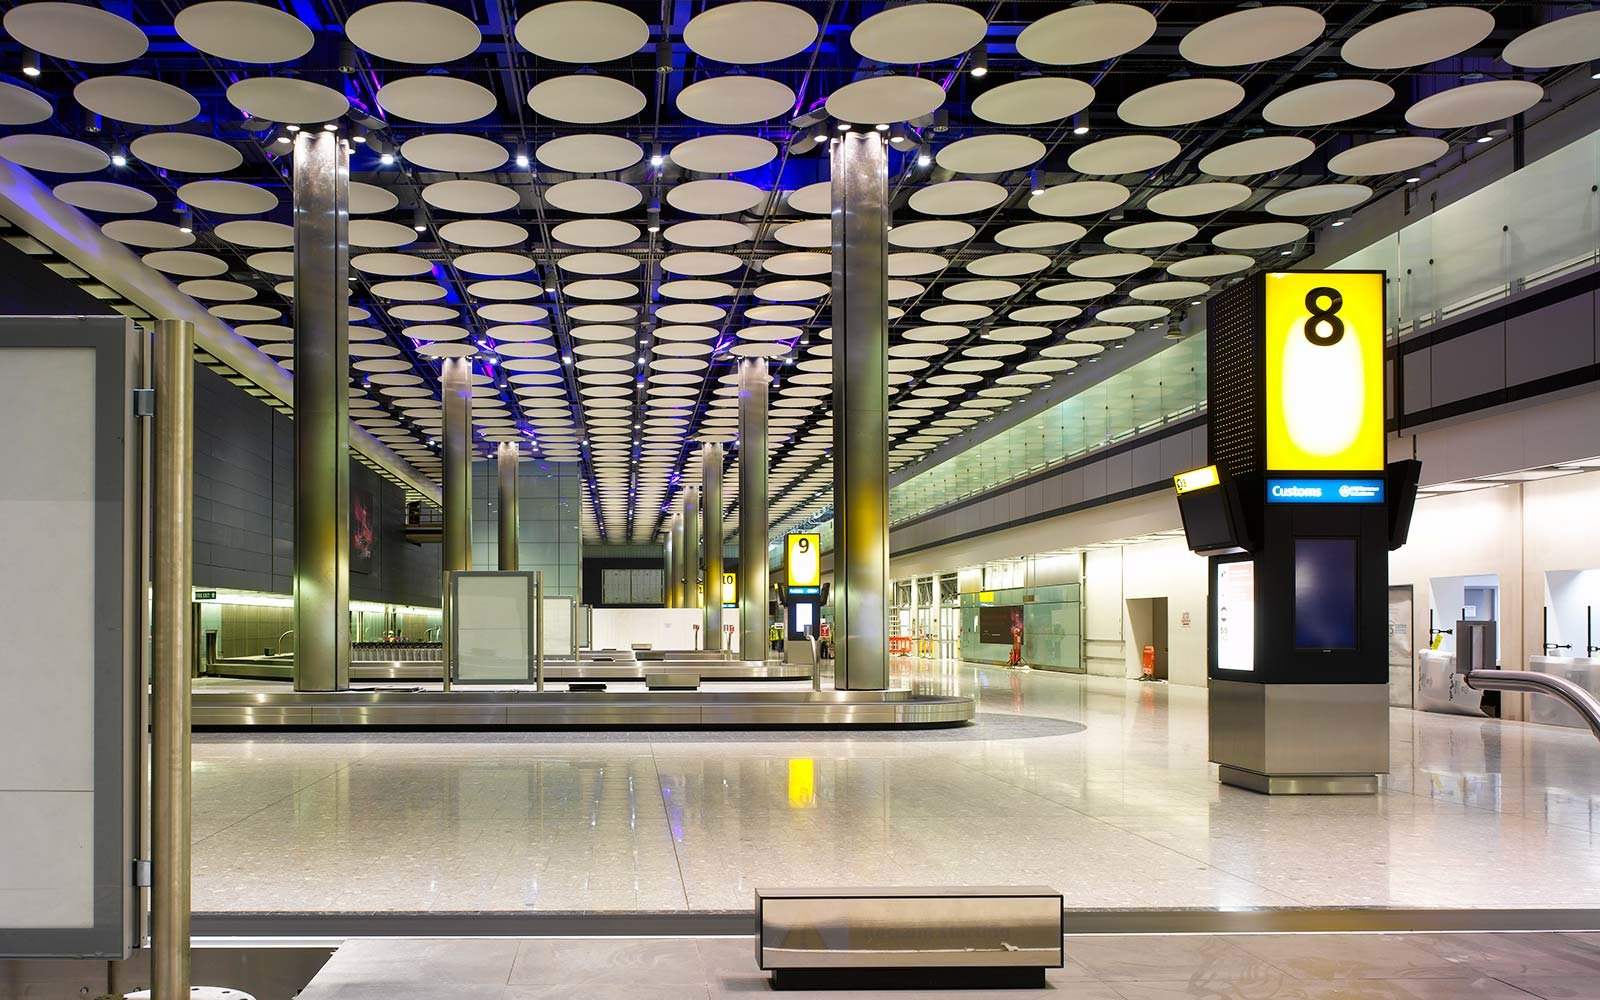 Terminal 5, Heathrow Airport, Hayes, United Kingdom, Architect Rogers Stirk Harbour + Partners, 2008, Terminal 5 Heathrow Construction Interior View - Baggage Reclaim Area In Arrivals. (Photo by View Pictures/UIG via Getty Images)